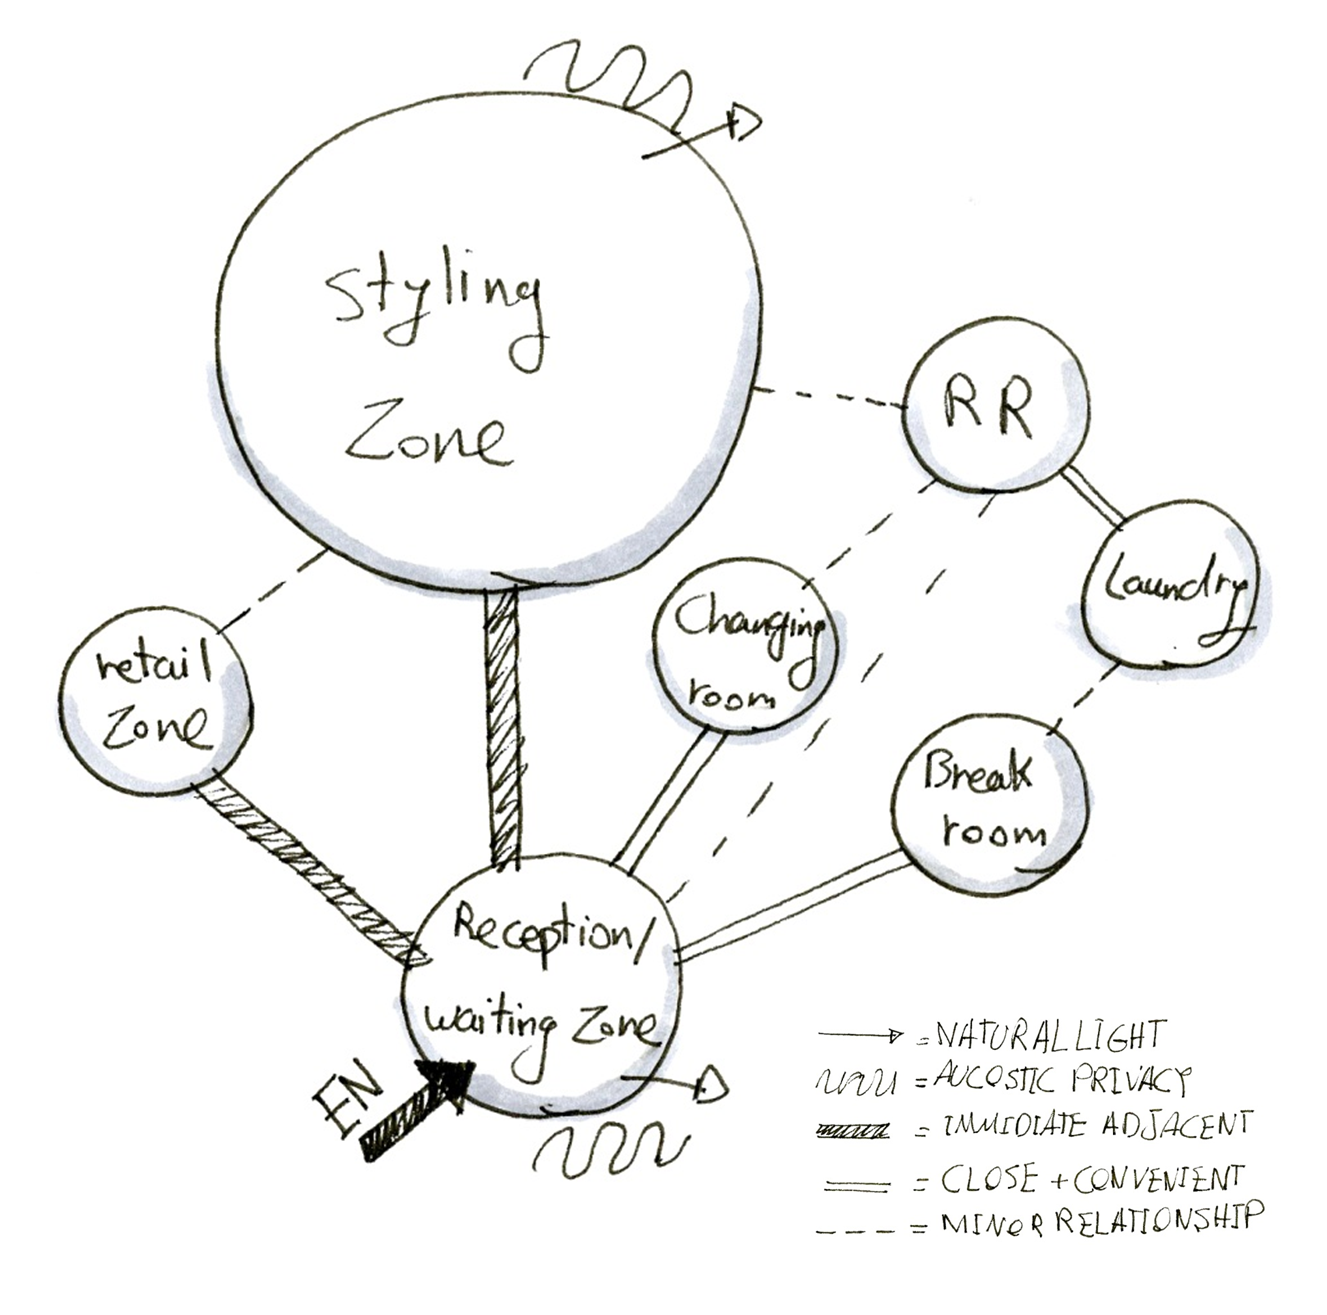 restaurant bubble diagram